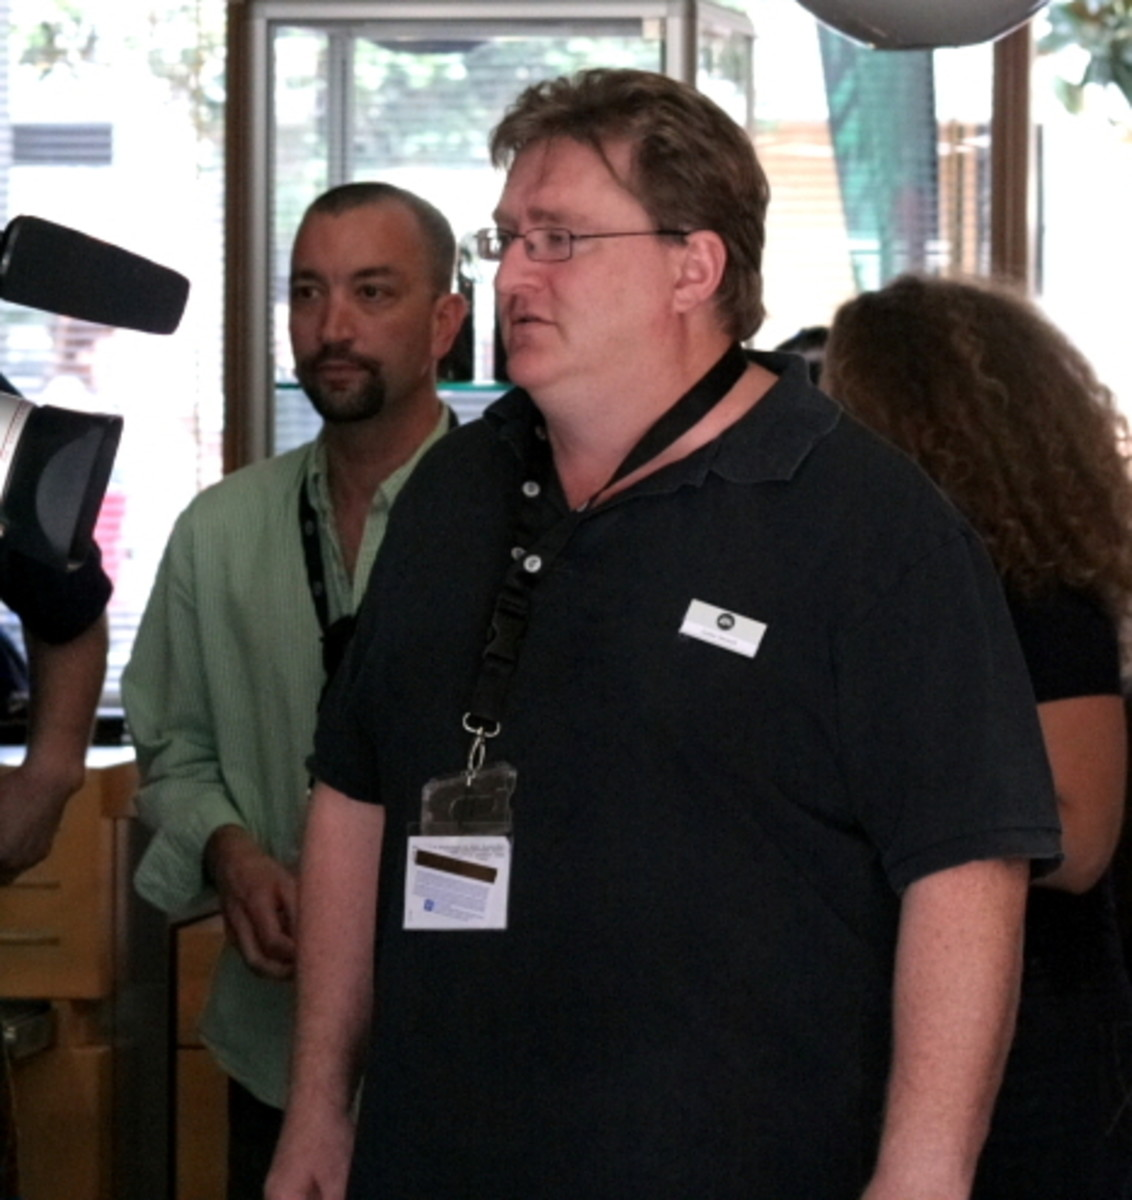 Gabe Newell: Bigwig in chief at Valve Corporation